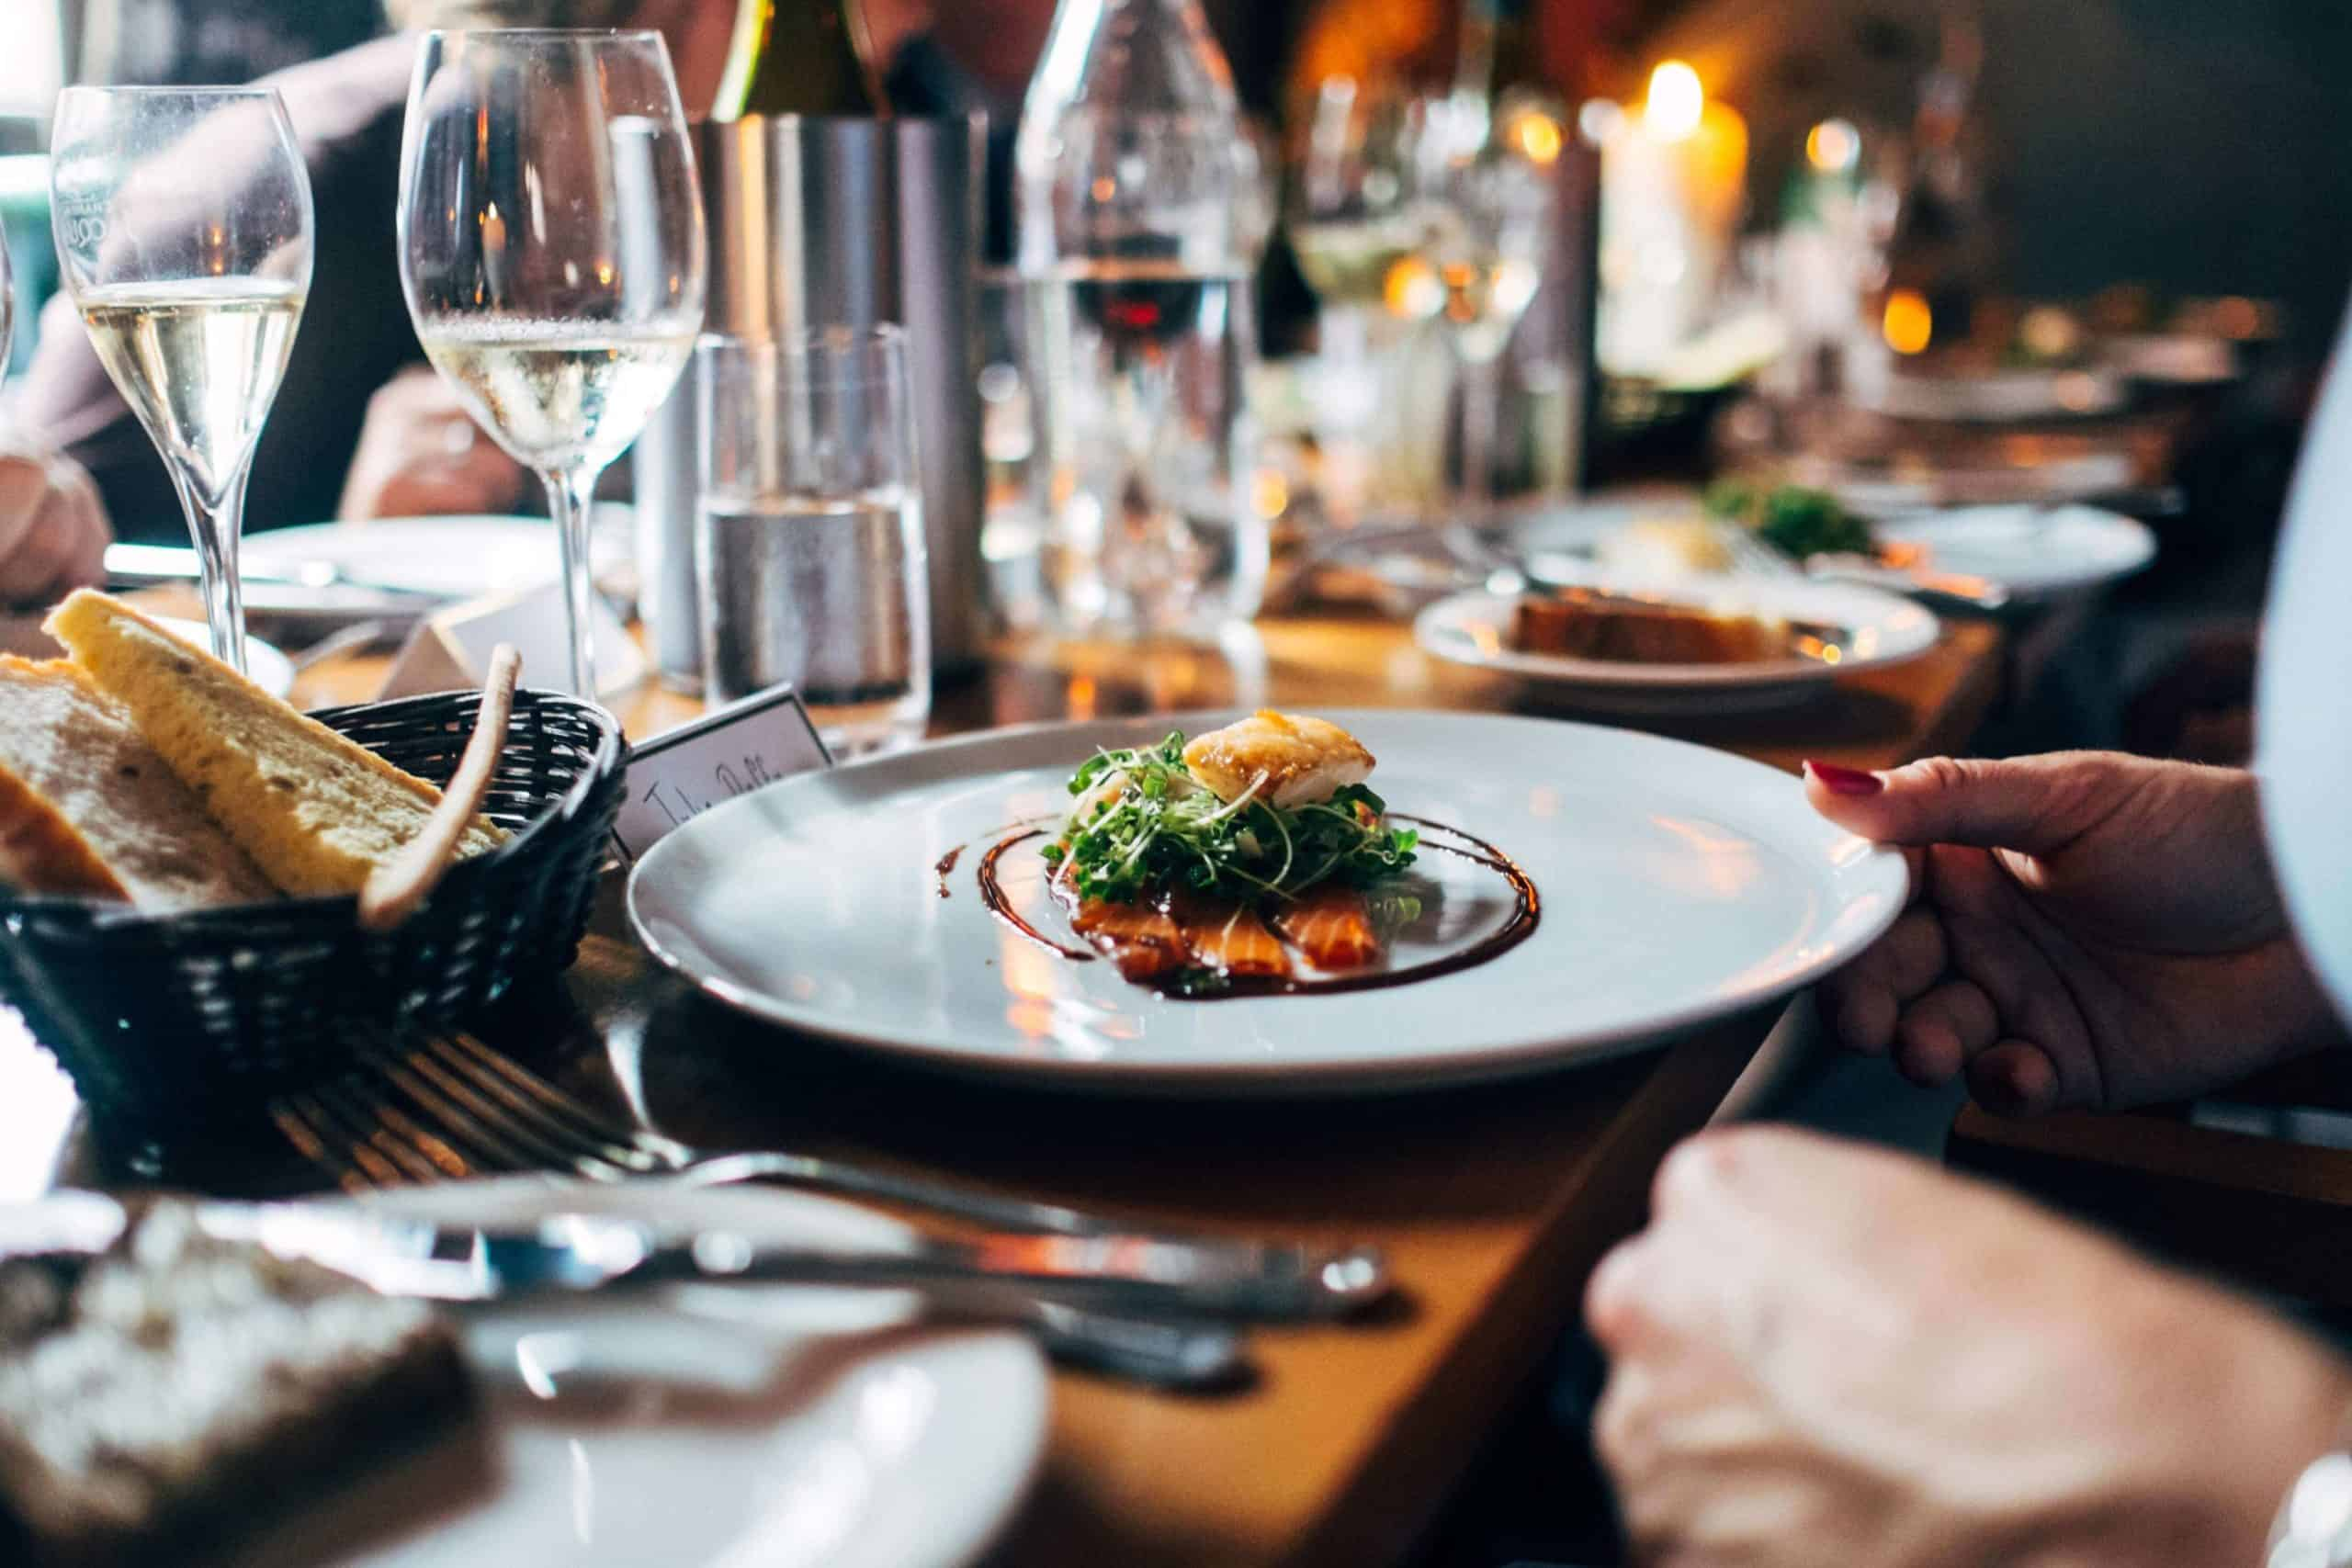 4 ingredients to increase revenue for full service restaurants